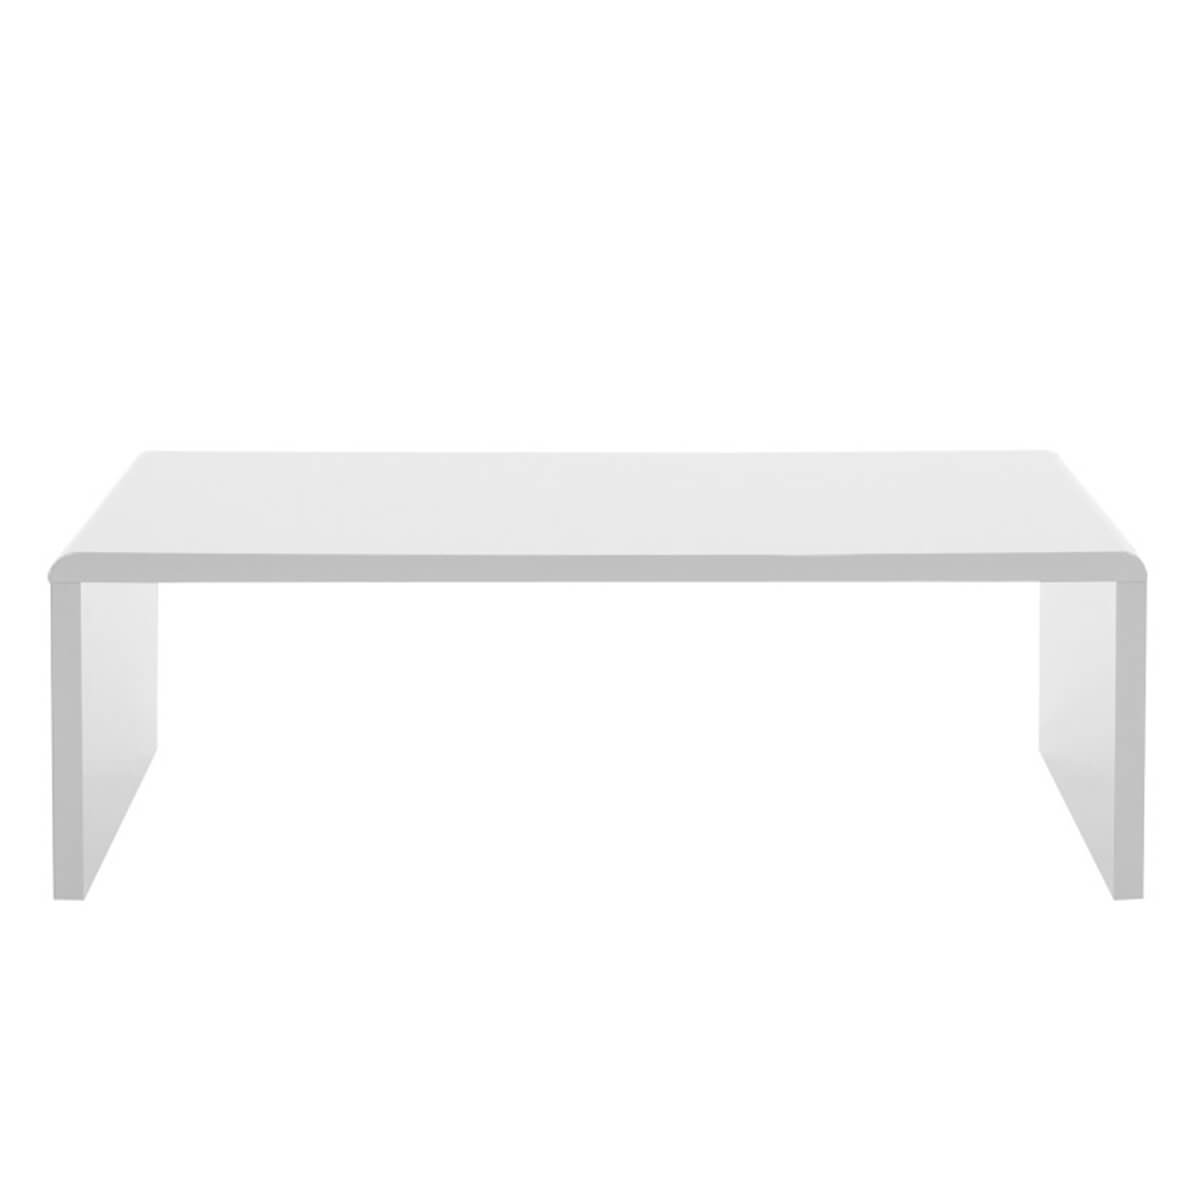 Supernova White High Gloss Coffee Table